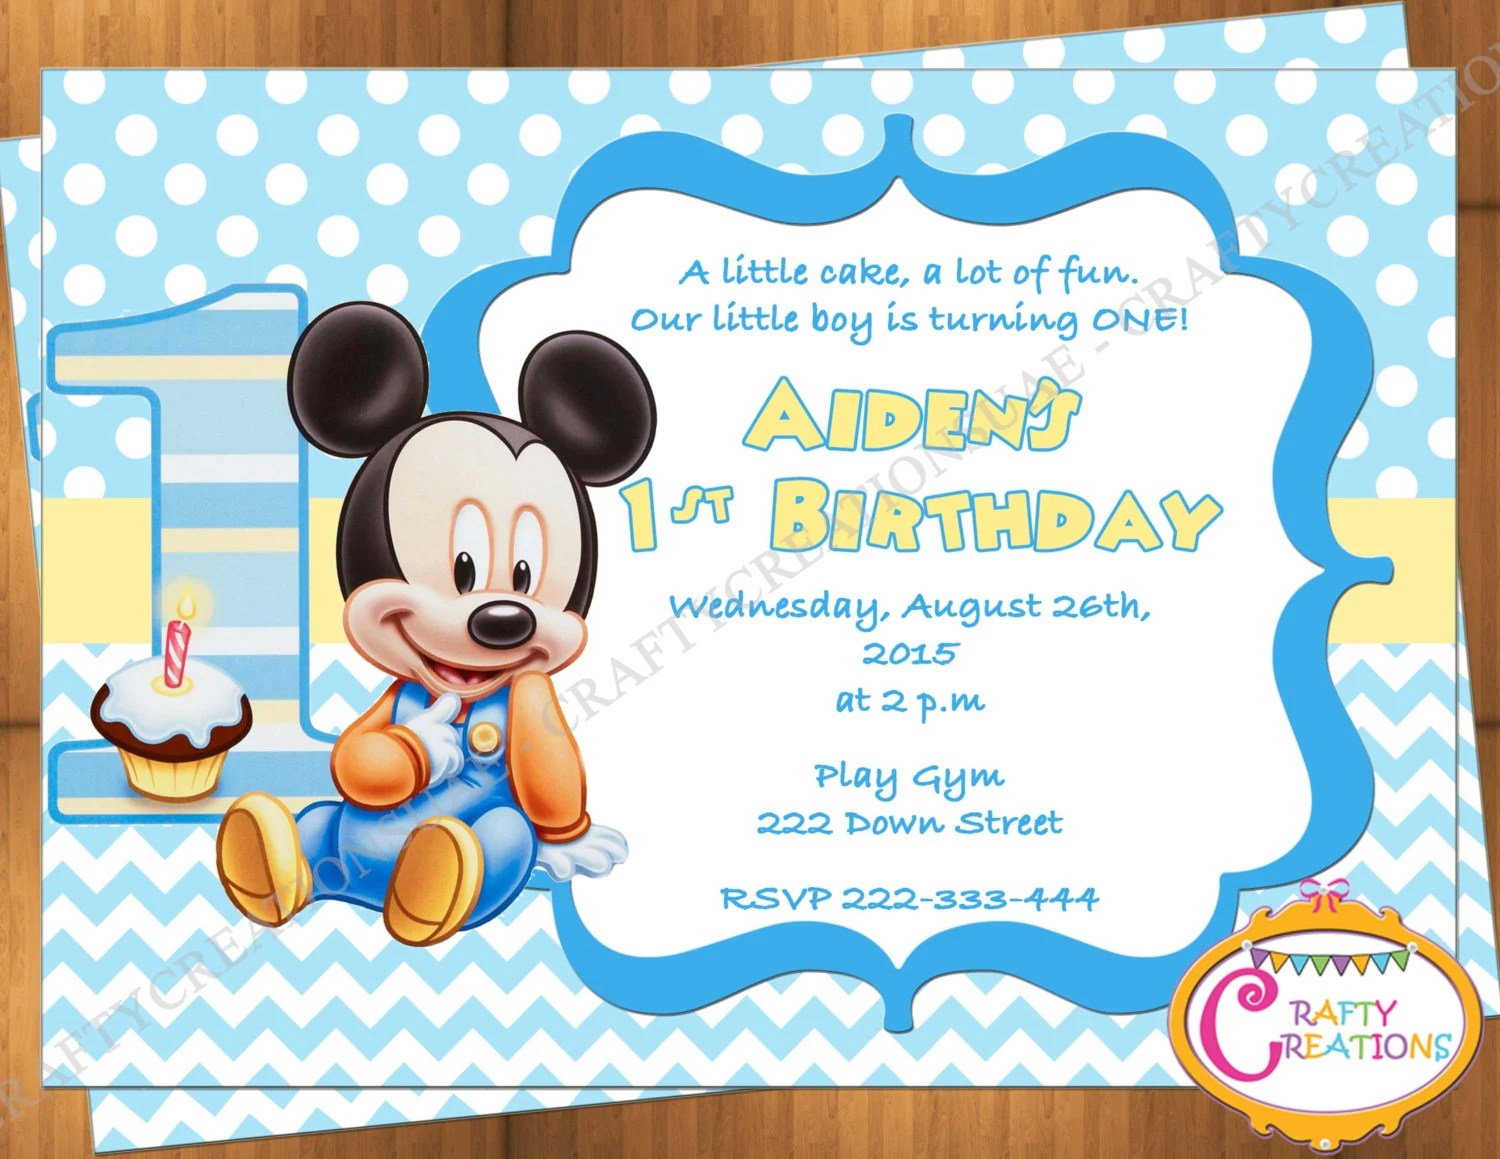 photograph regarding Free Printable Mickey Mouse 1st Birthday Invitations identify Mickey Mouse Initially Birthday Invites - Anarchistshemale